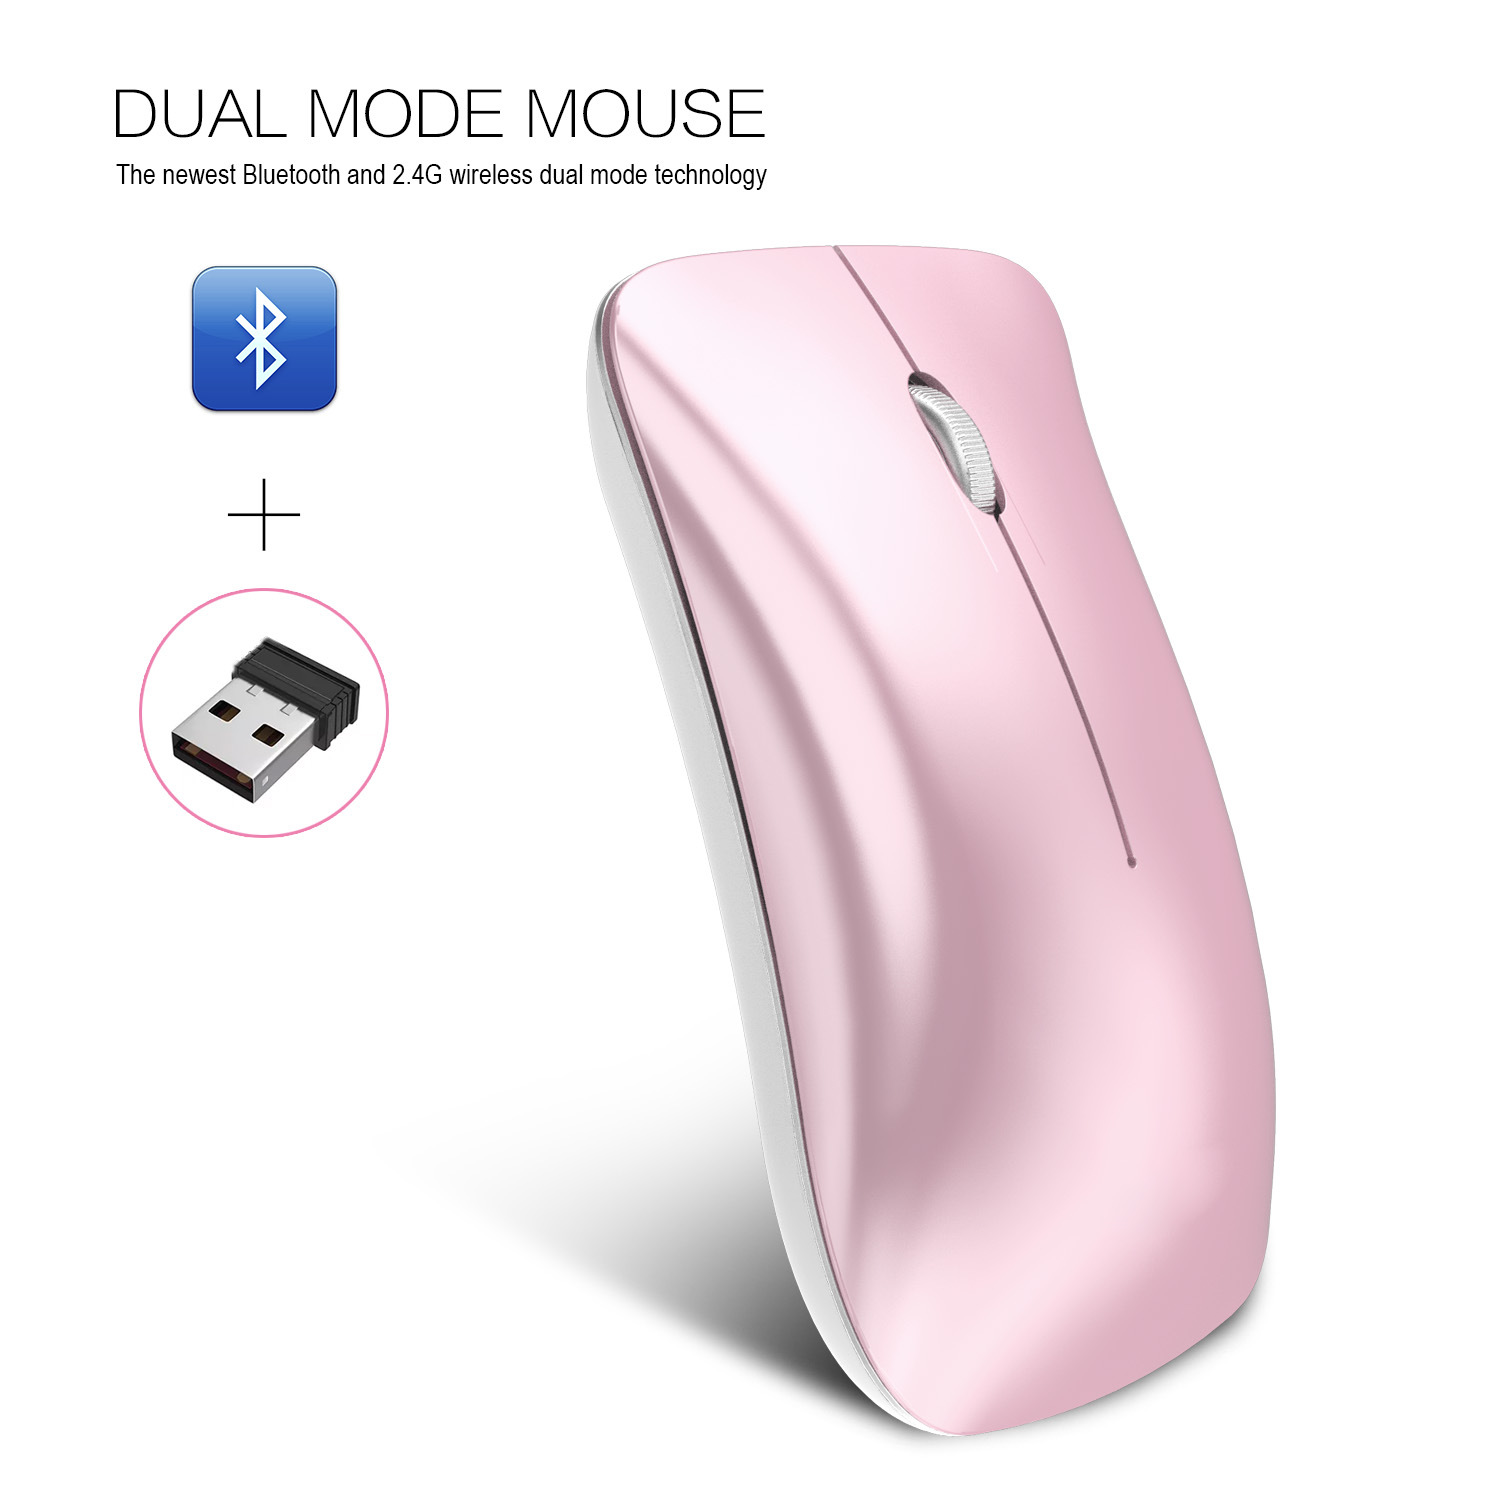 Wireless Bluetooth Mouse Rechargeable 2.4G USB Optical Vertical Ergonomic Dual Mode Mute Mouse Pink